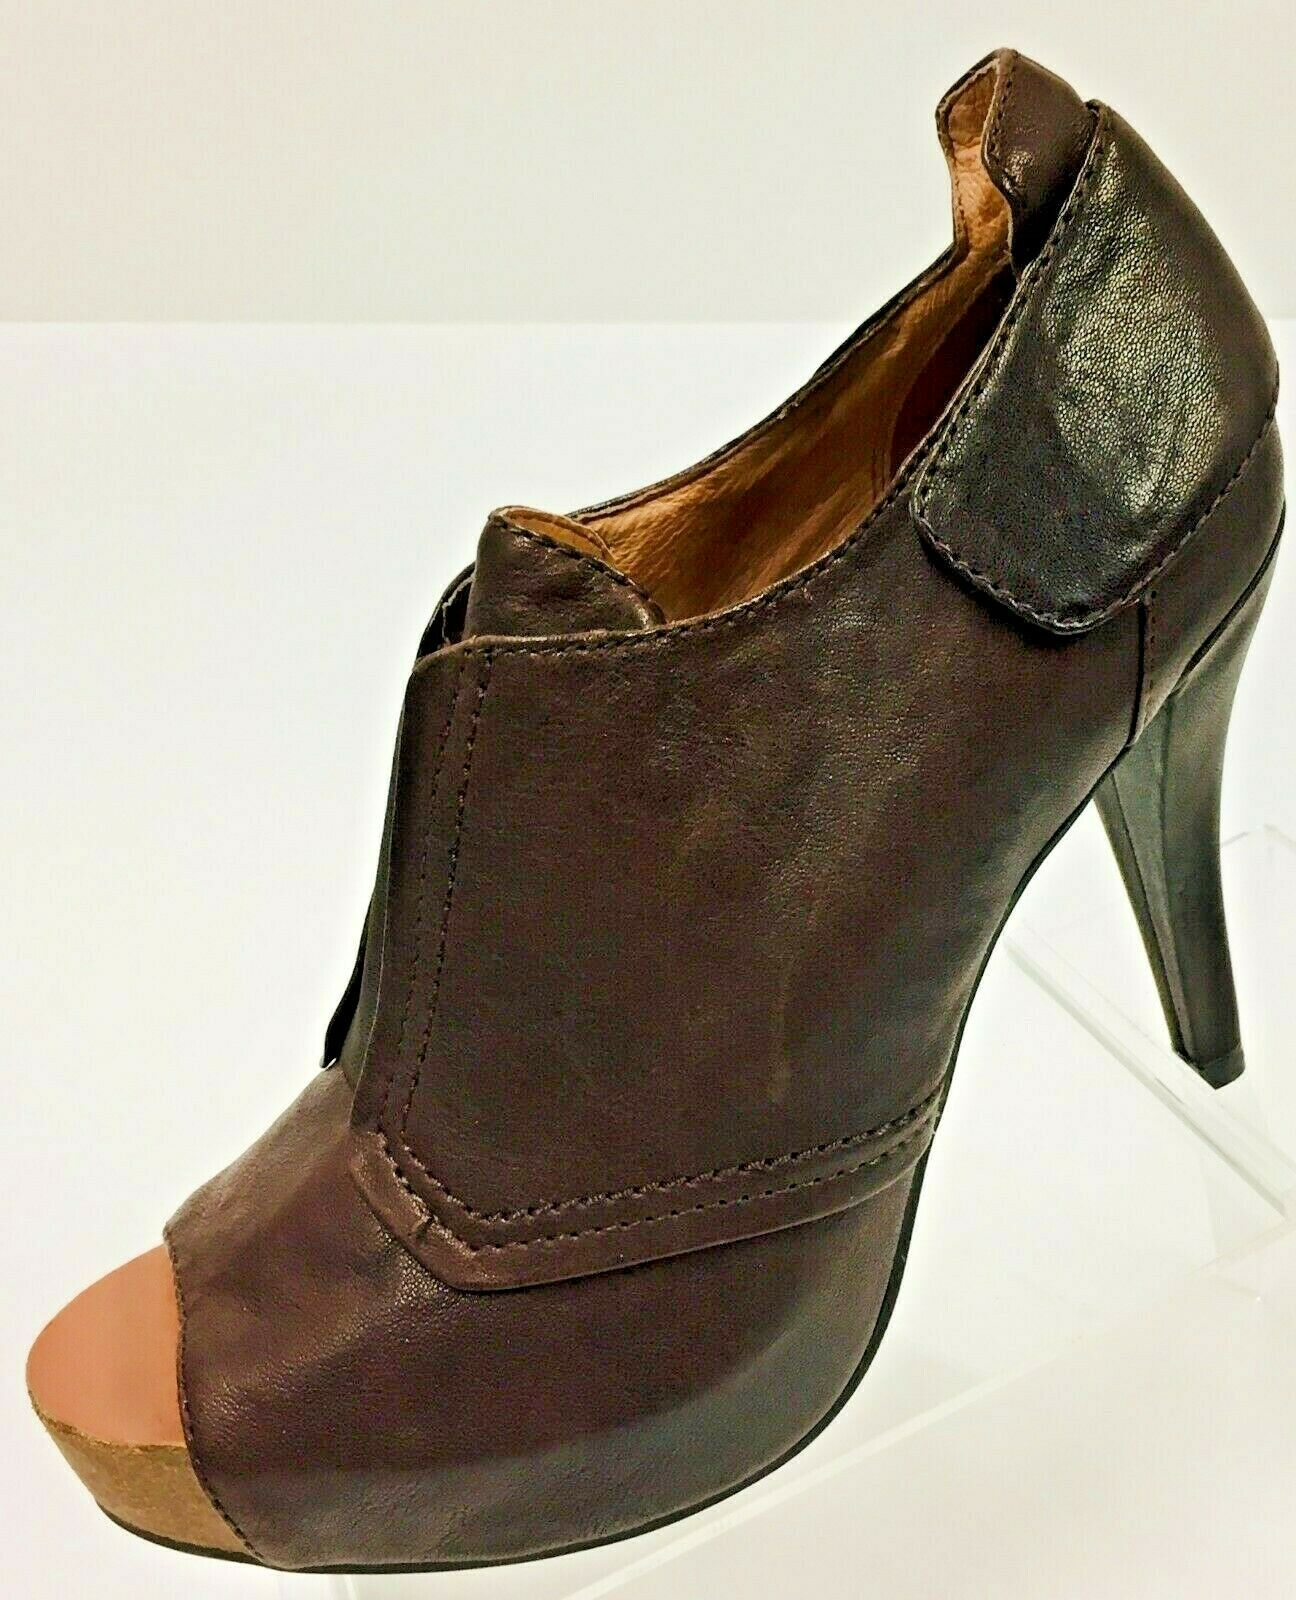 Vince Camuto Womens Brown Size 10 Pernot Leather  Peep Toe Bootie Platform Heels